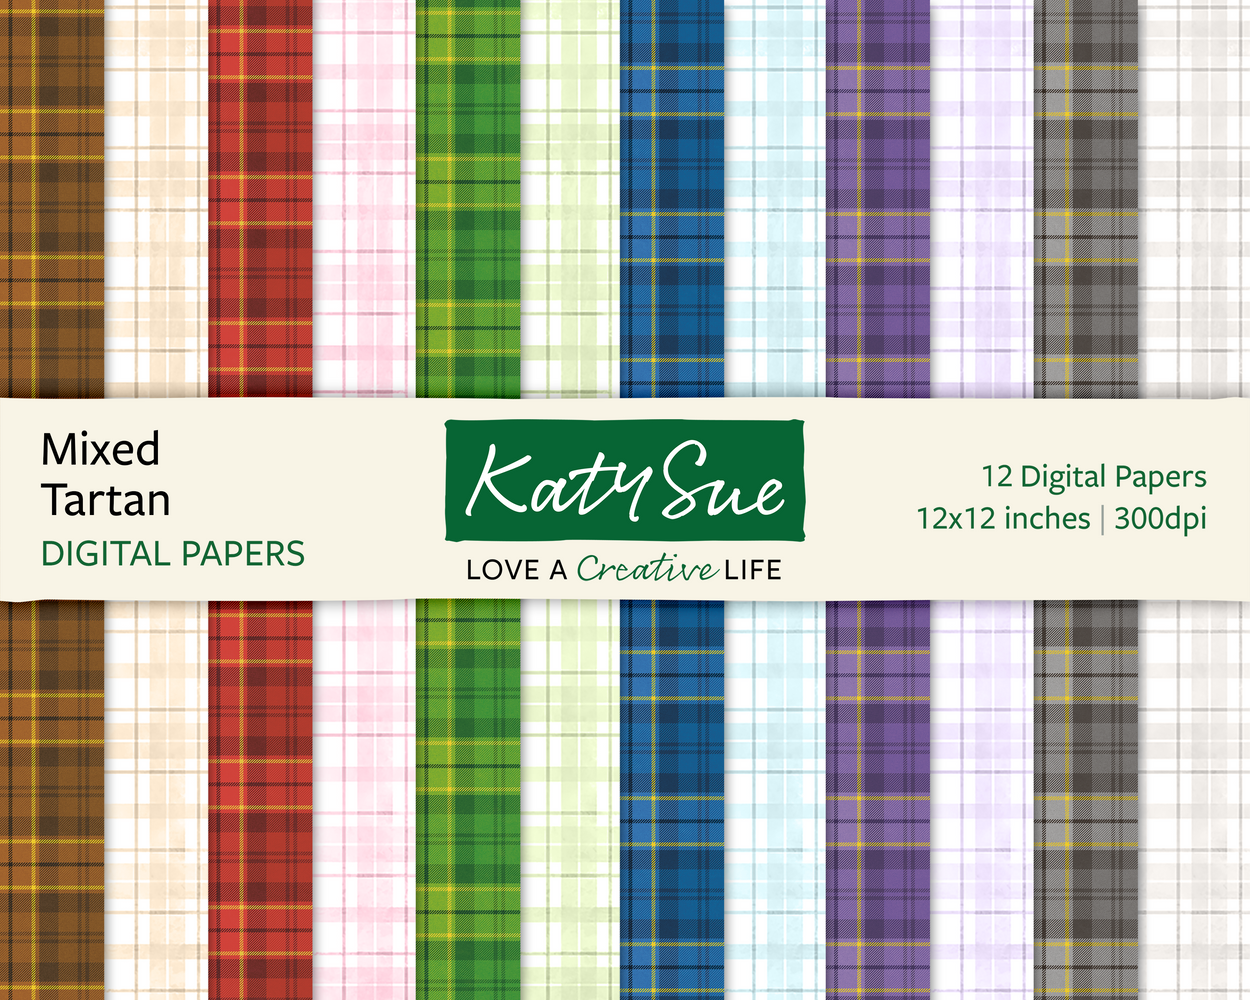 Mixed Tartan | 12x12 Digital Papers